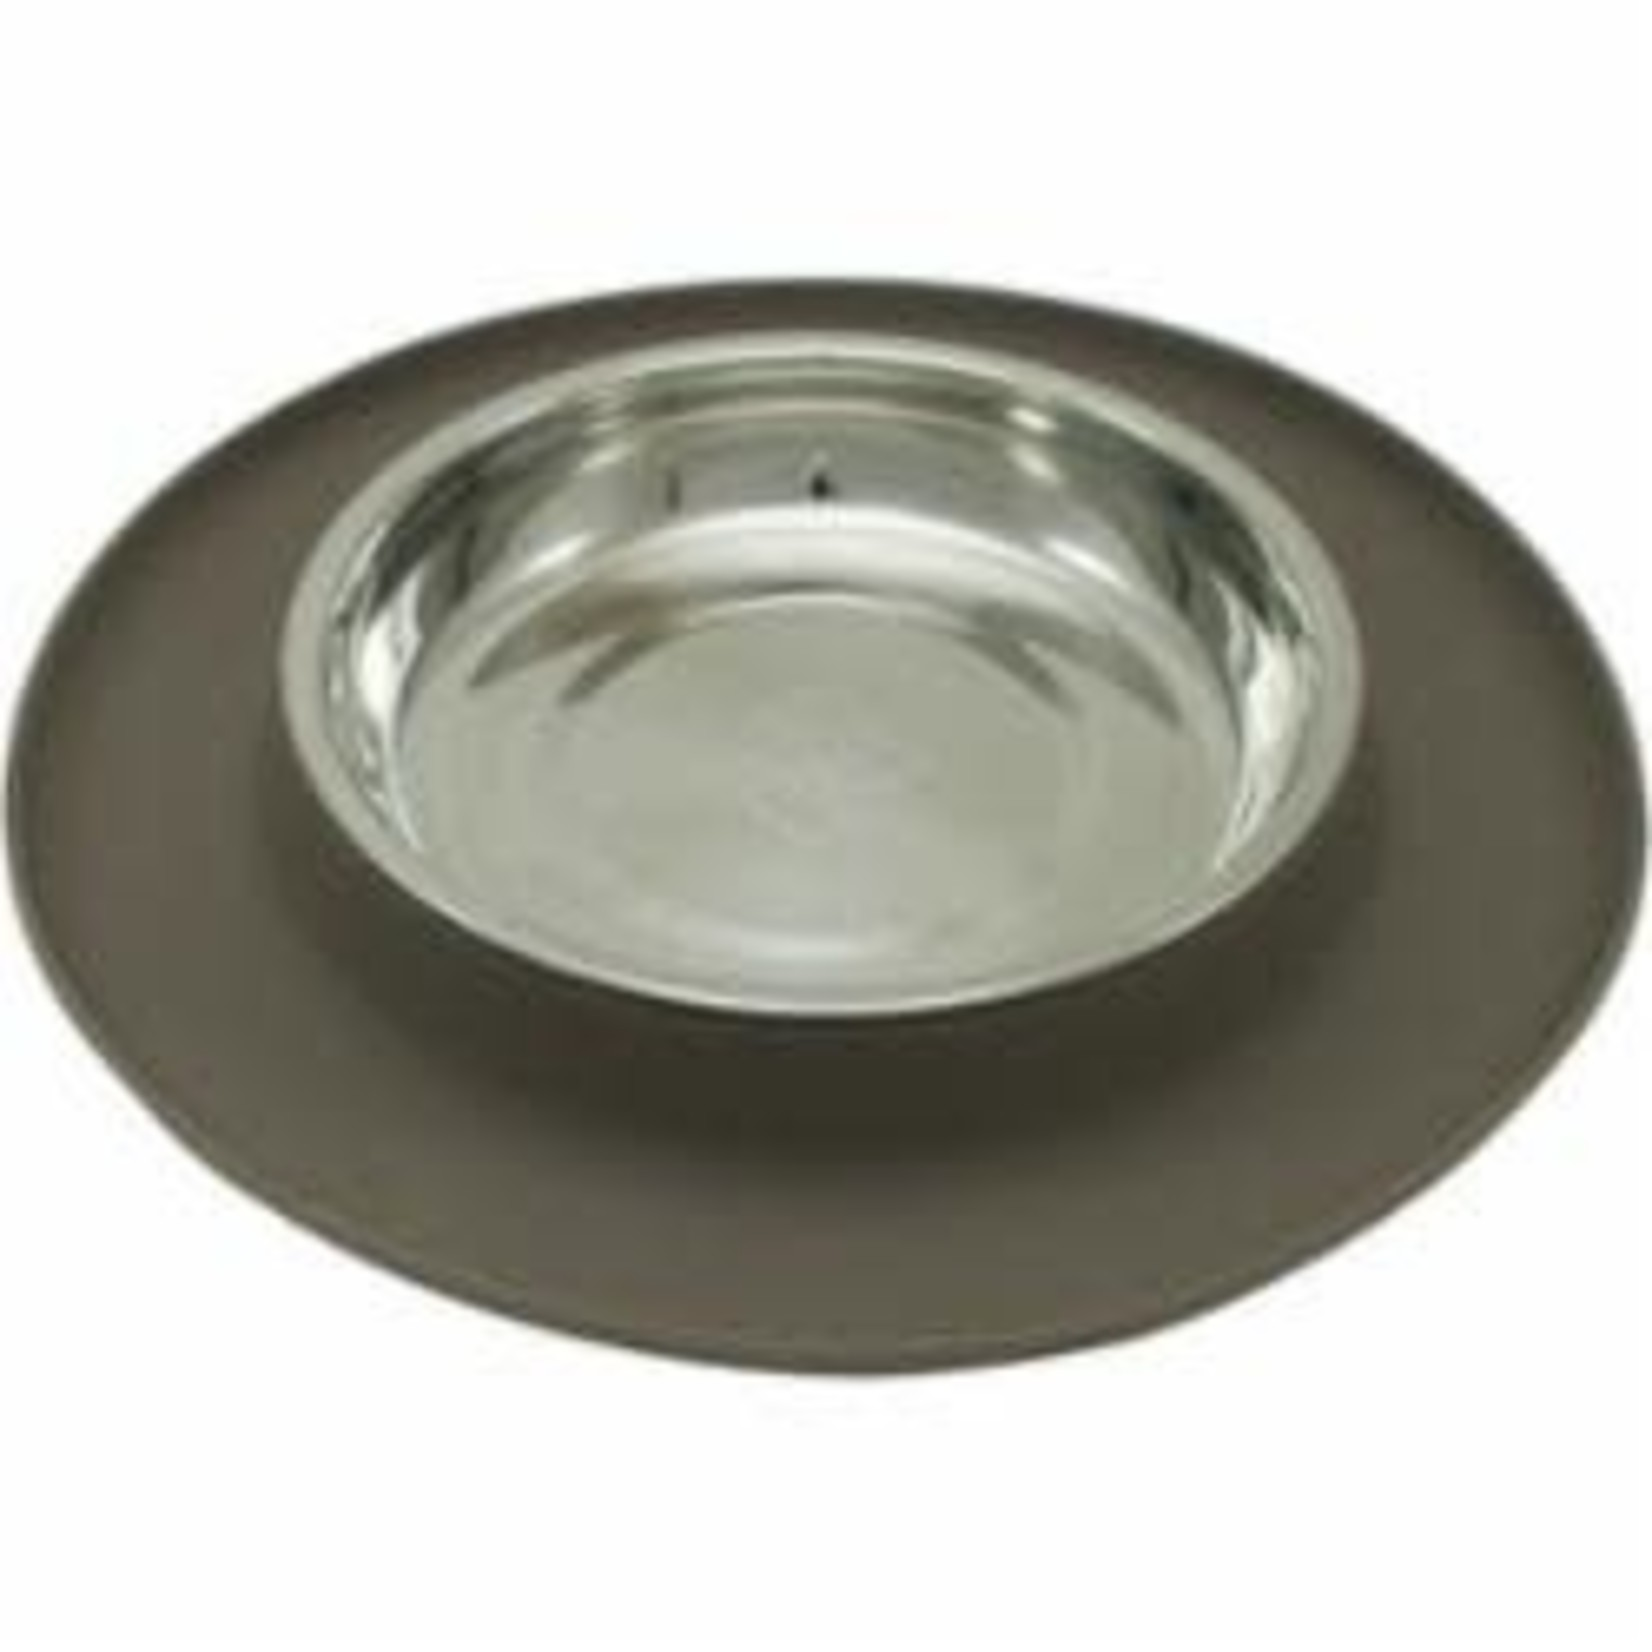 Messy Mutts Messy Mutts Cat Silicone Feeder Grey